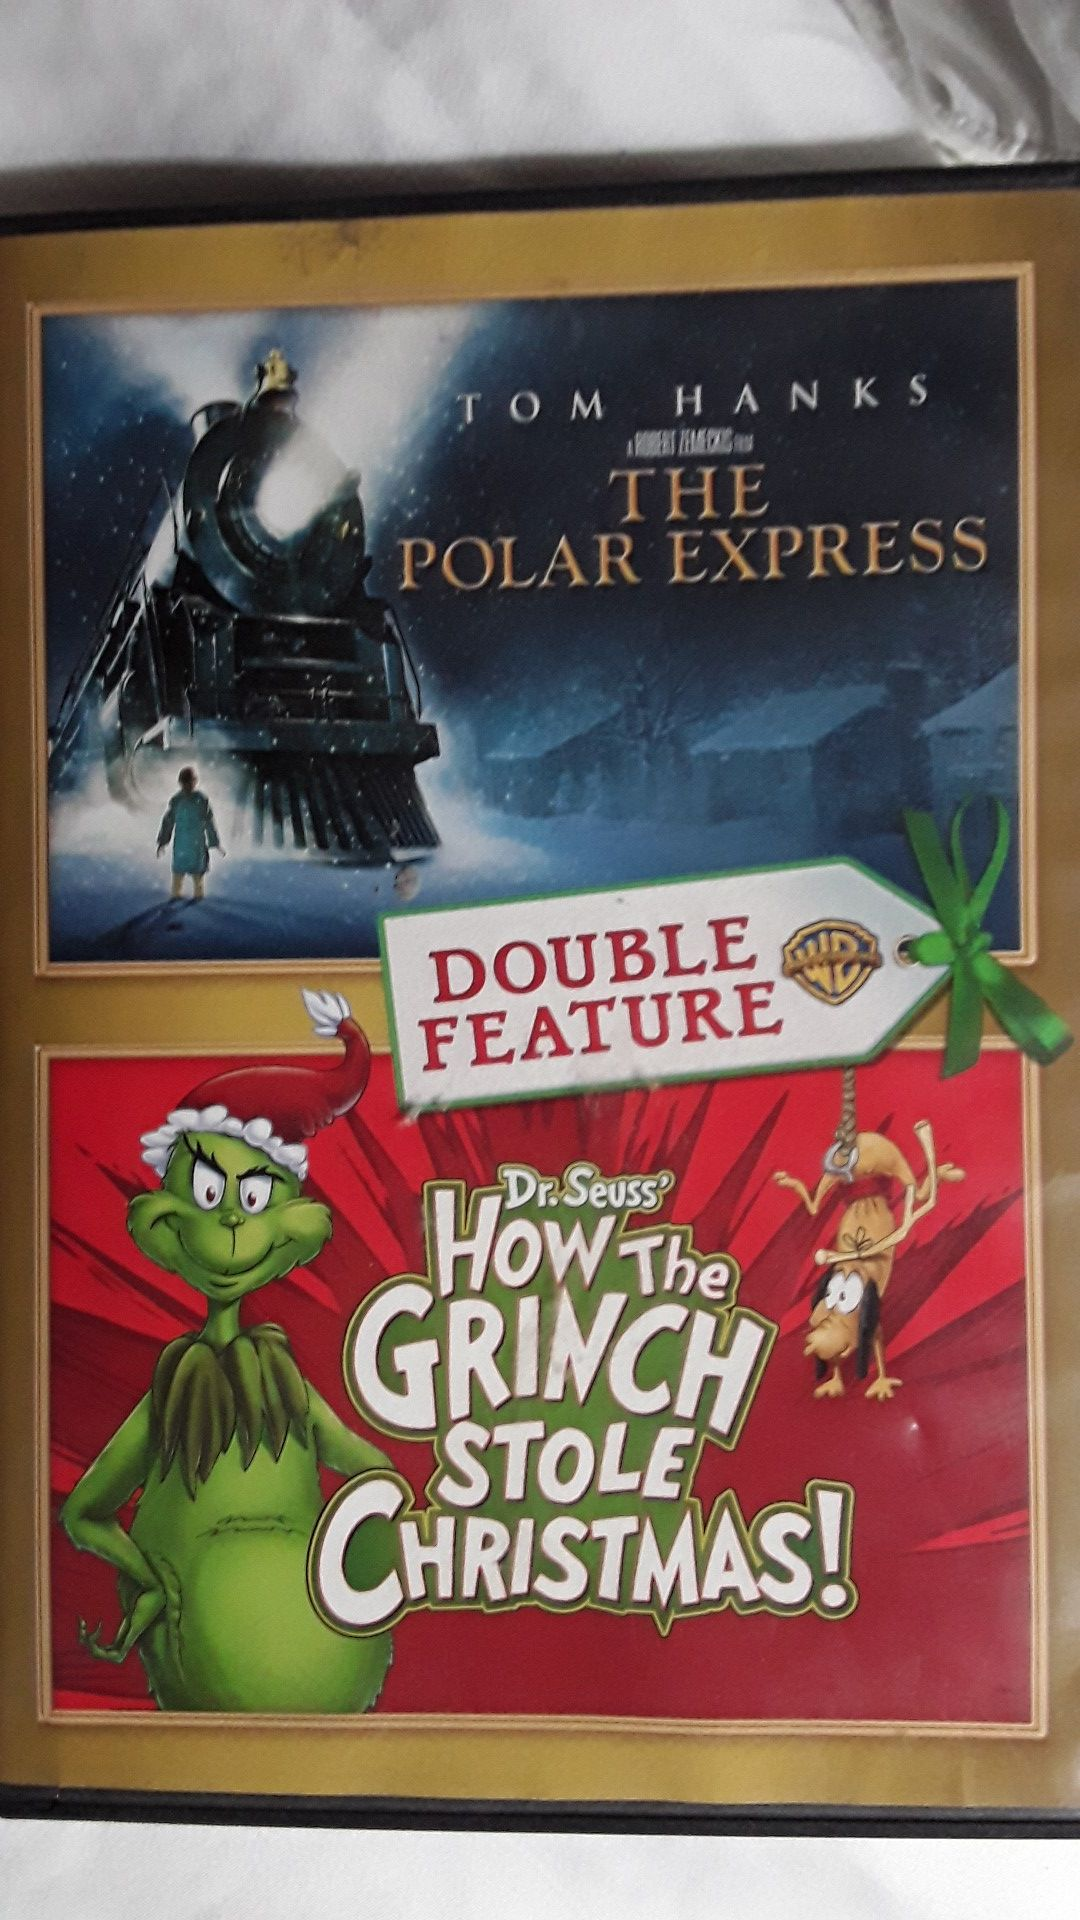 How the grinch stole christmas and Polar express movies